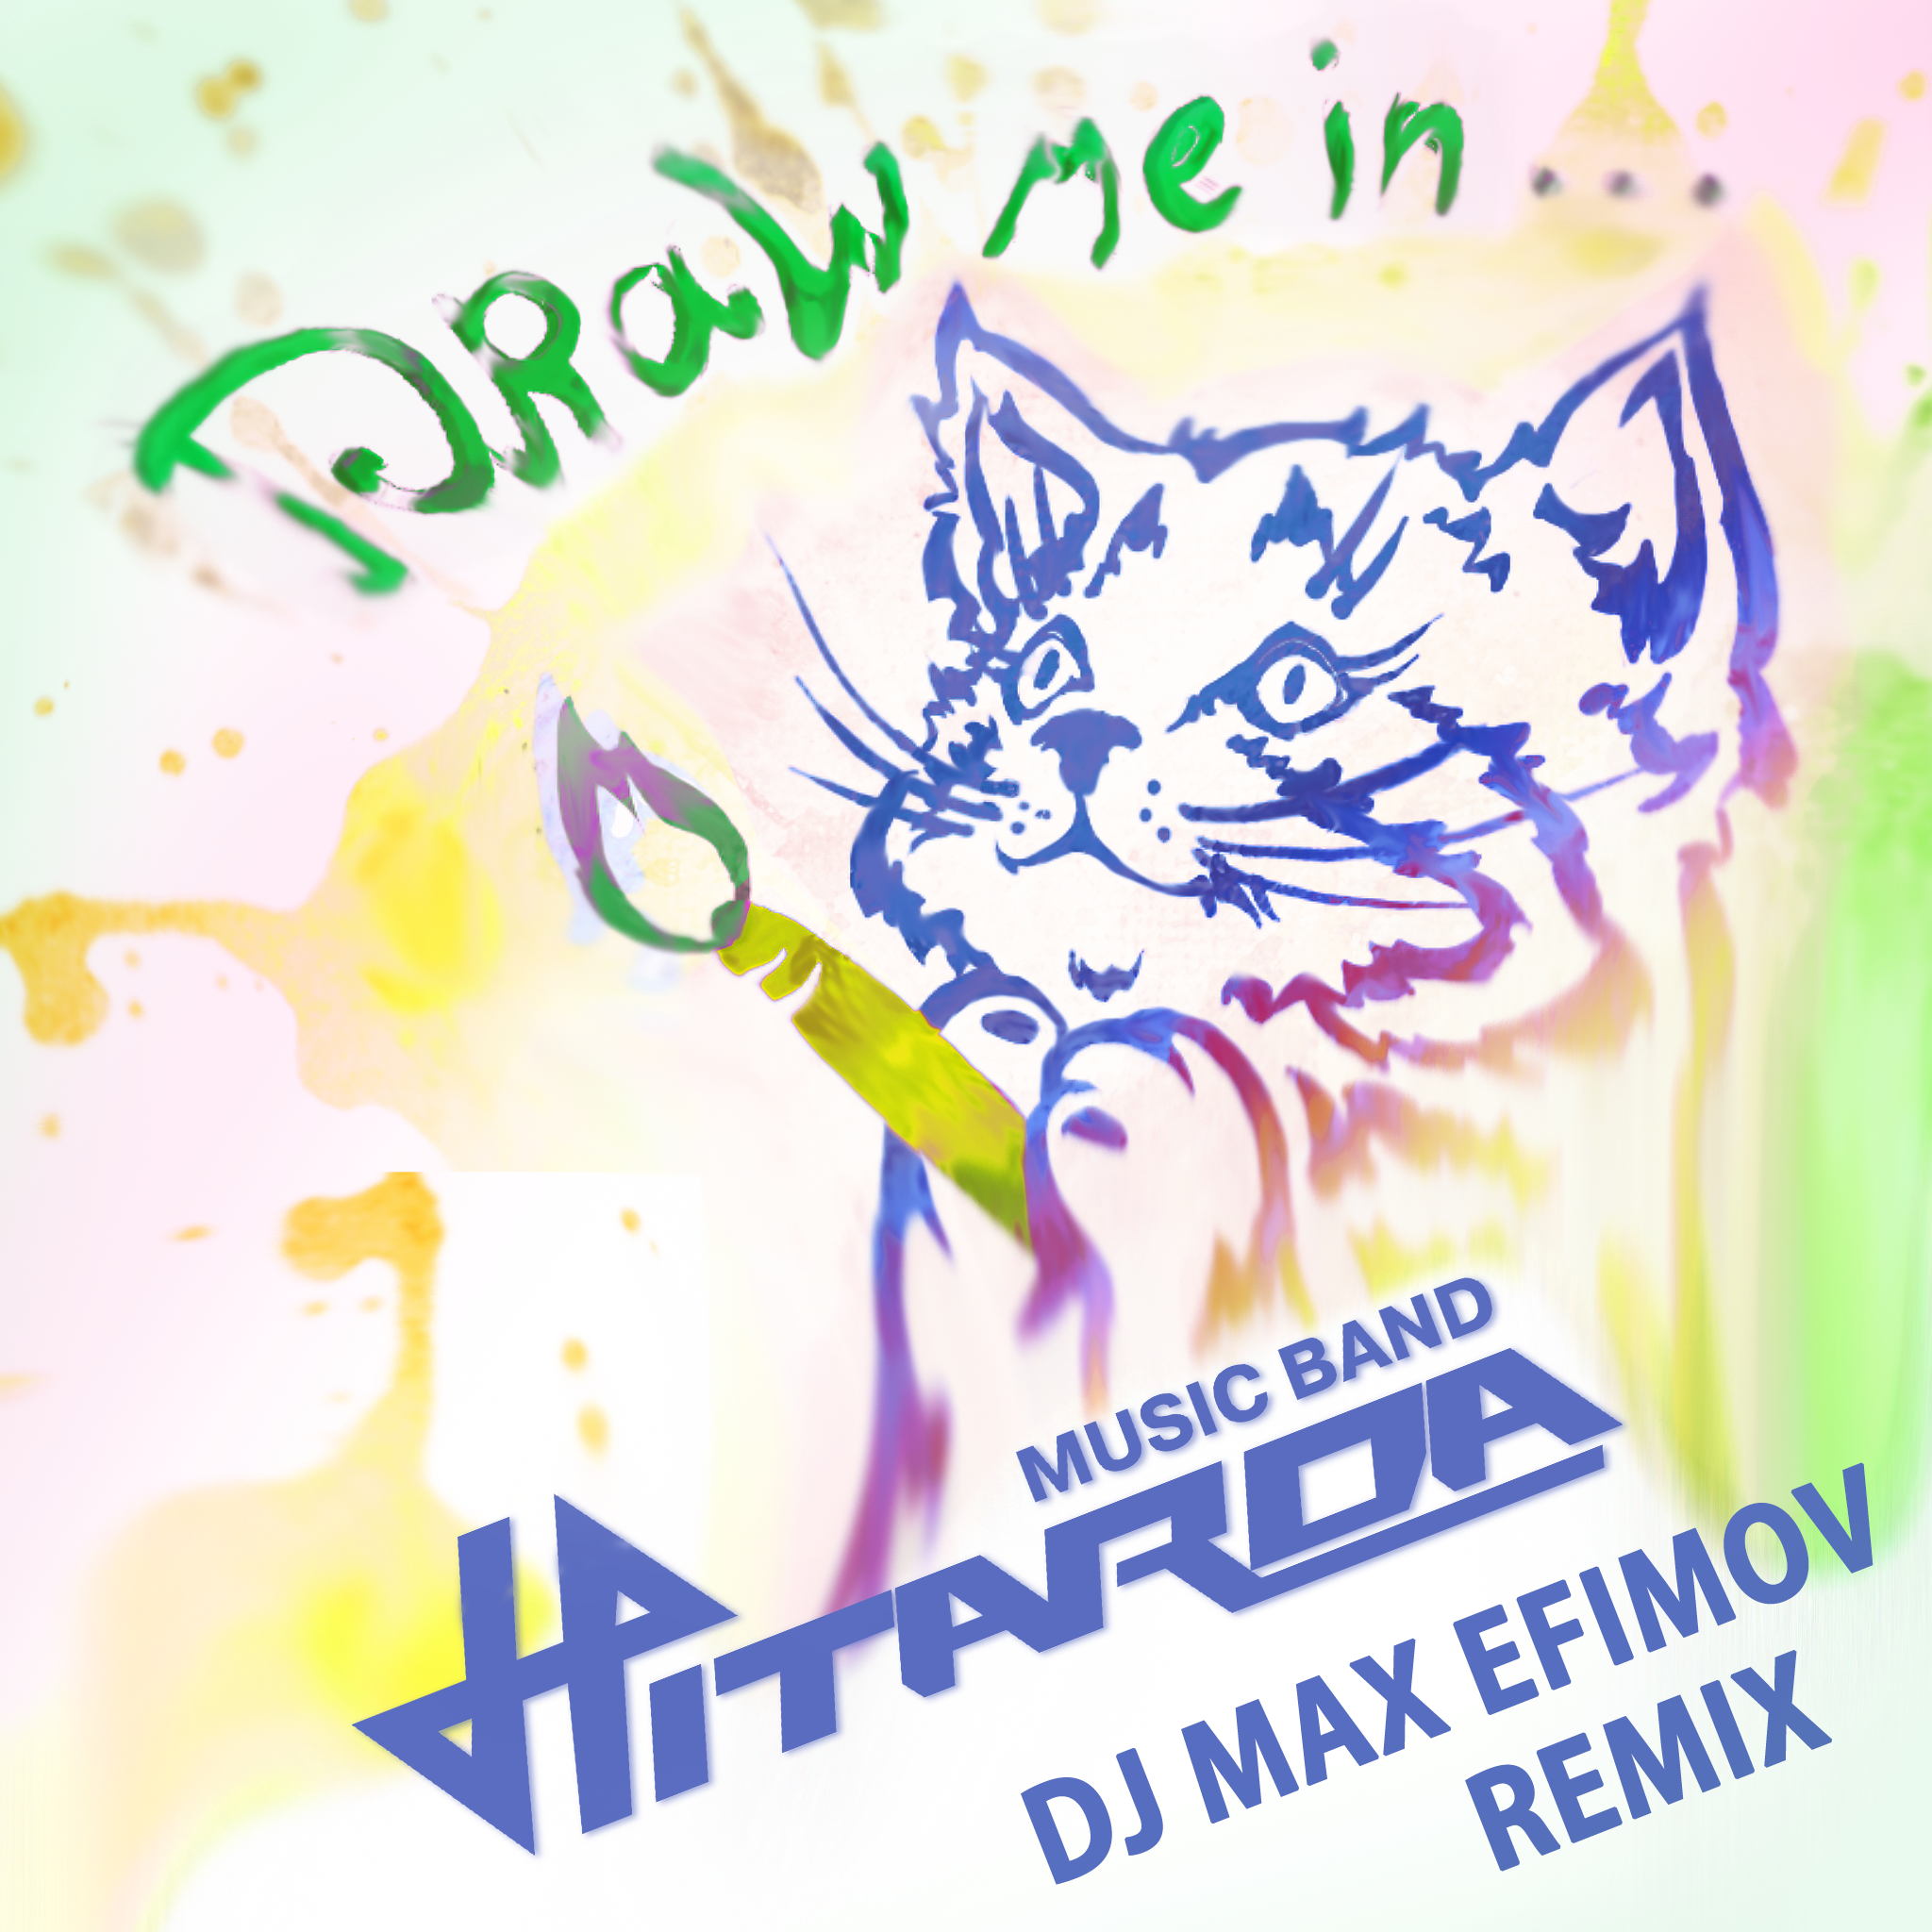 Hitarda – Draw me in (feat DJ Max Efimov)